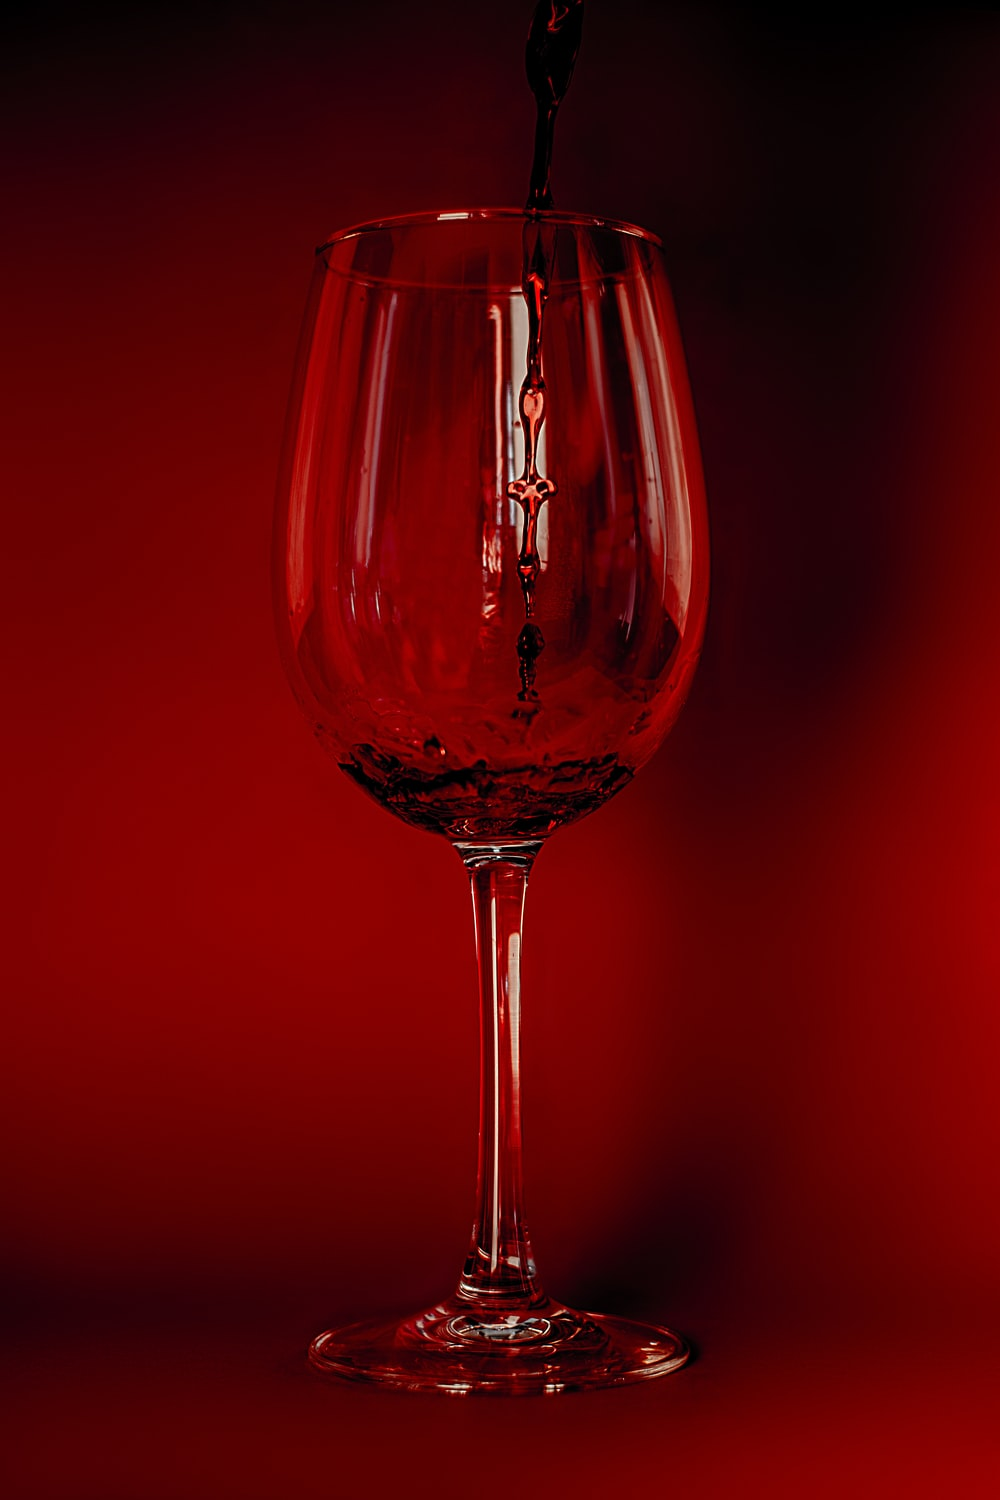 red wine in clear wine glass